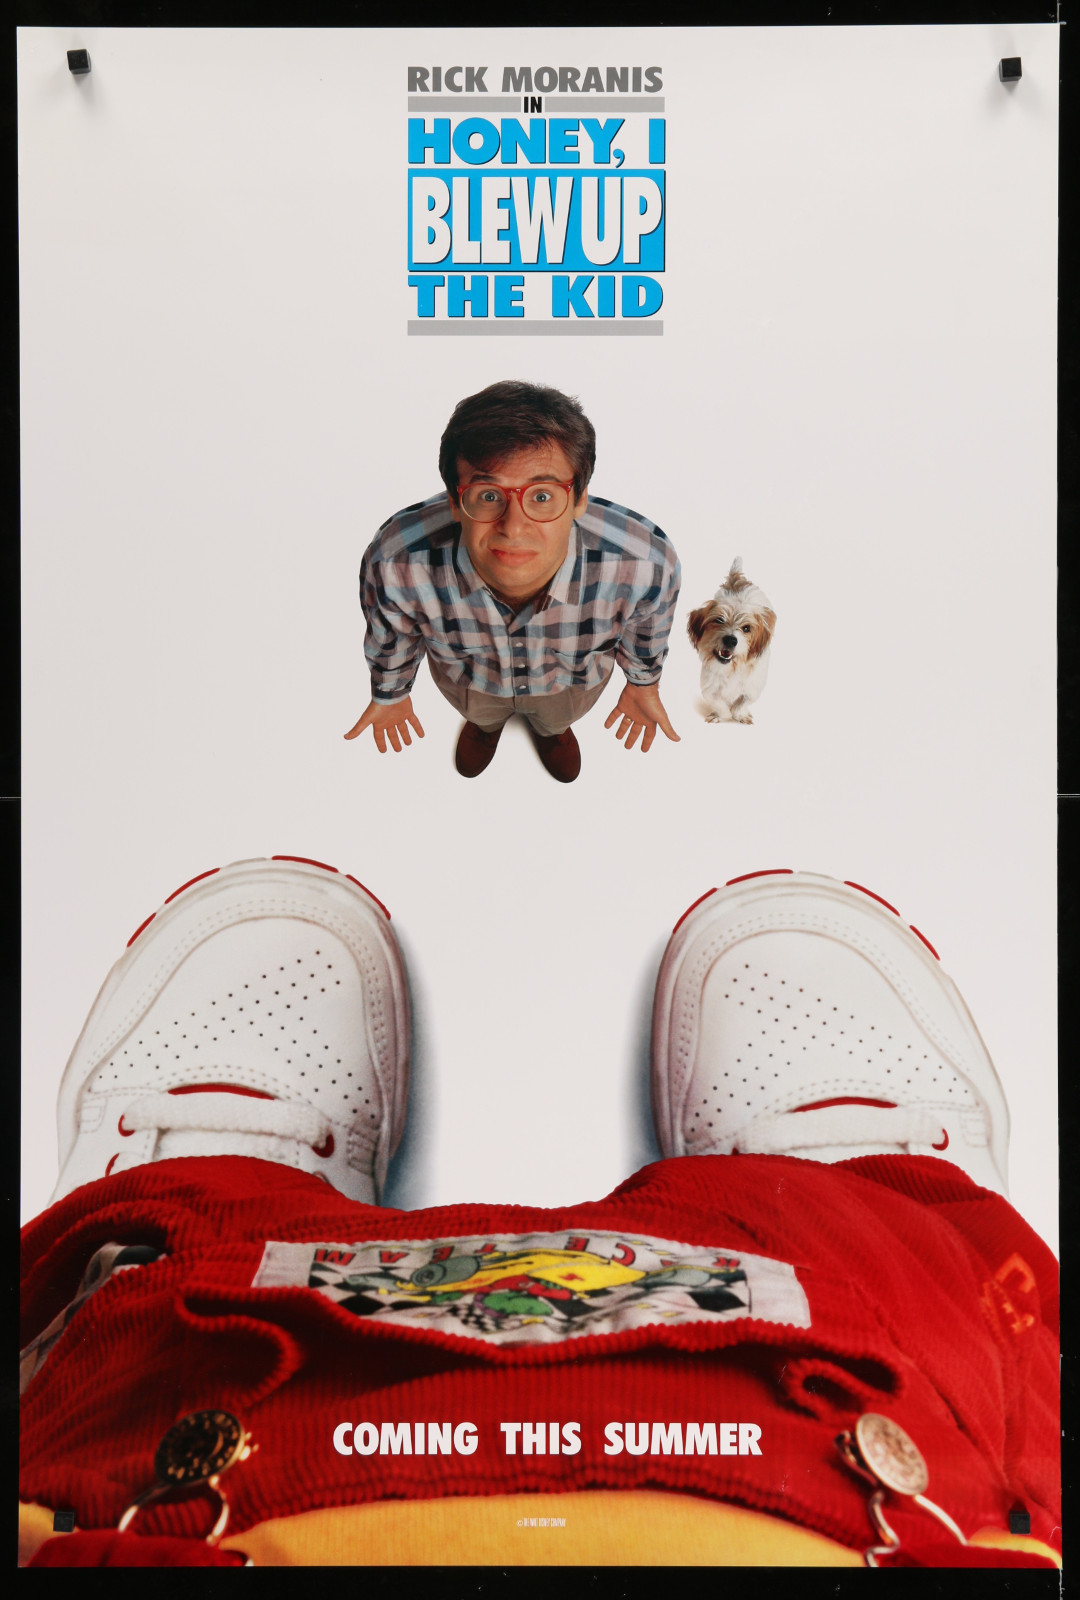 Honey, I Blew Up The Kid 2A366 A Part Of A Lot 29 Unfolded Double-Sided 27X40 One-Sheets '90S-00S Great Movie Images!